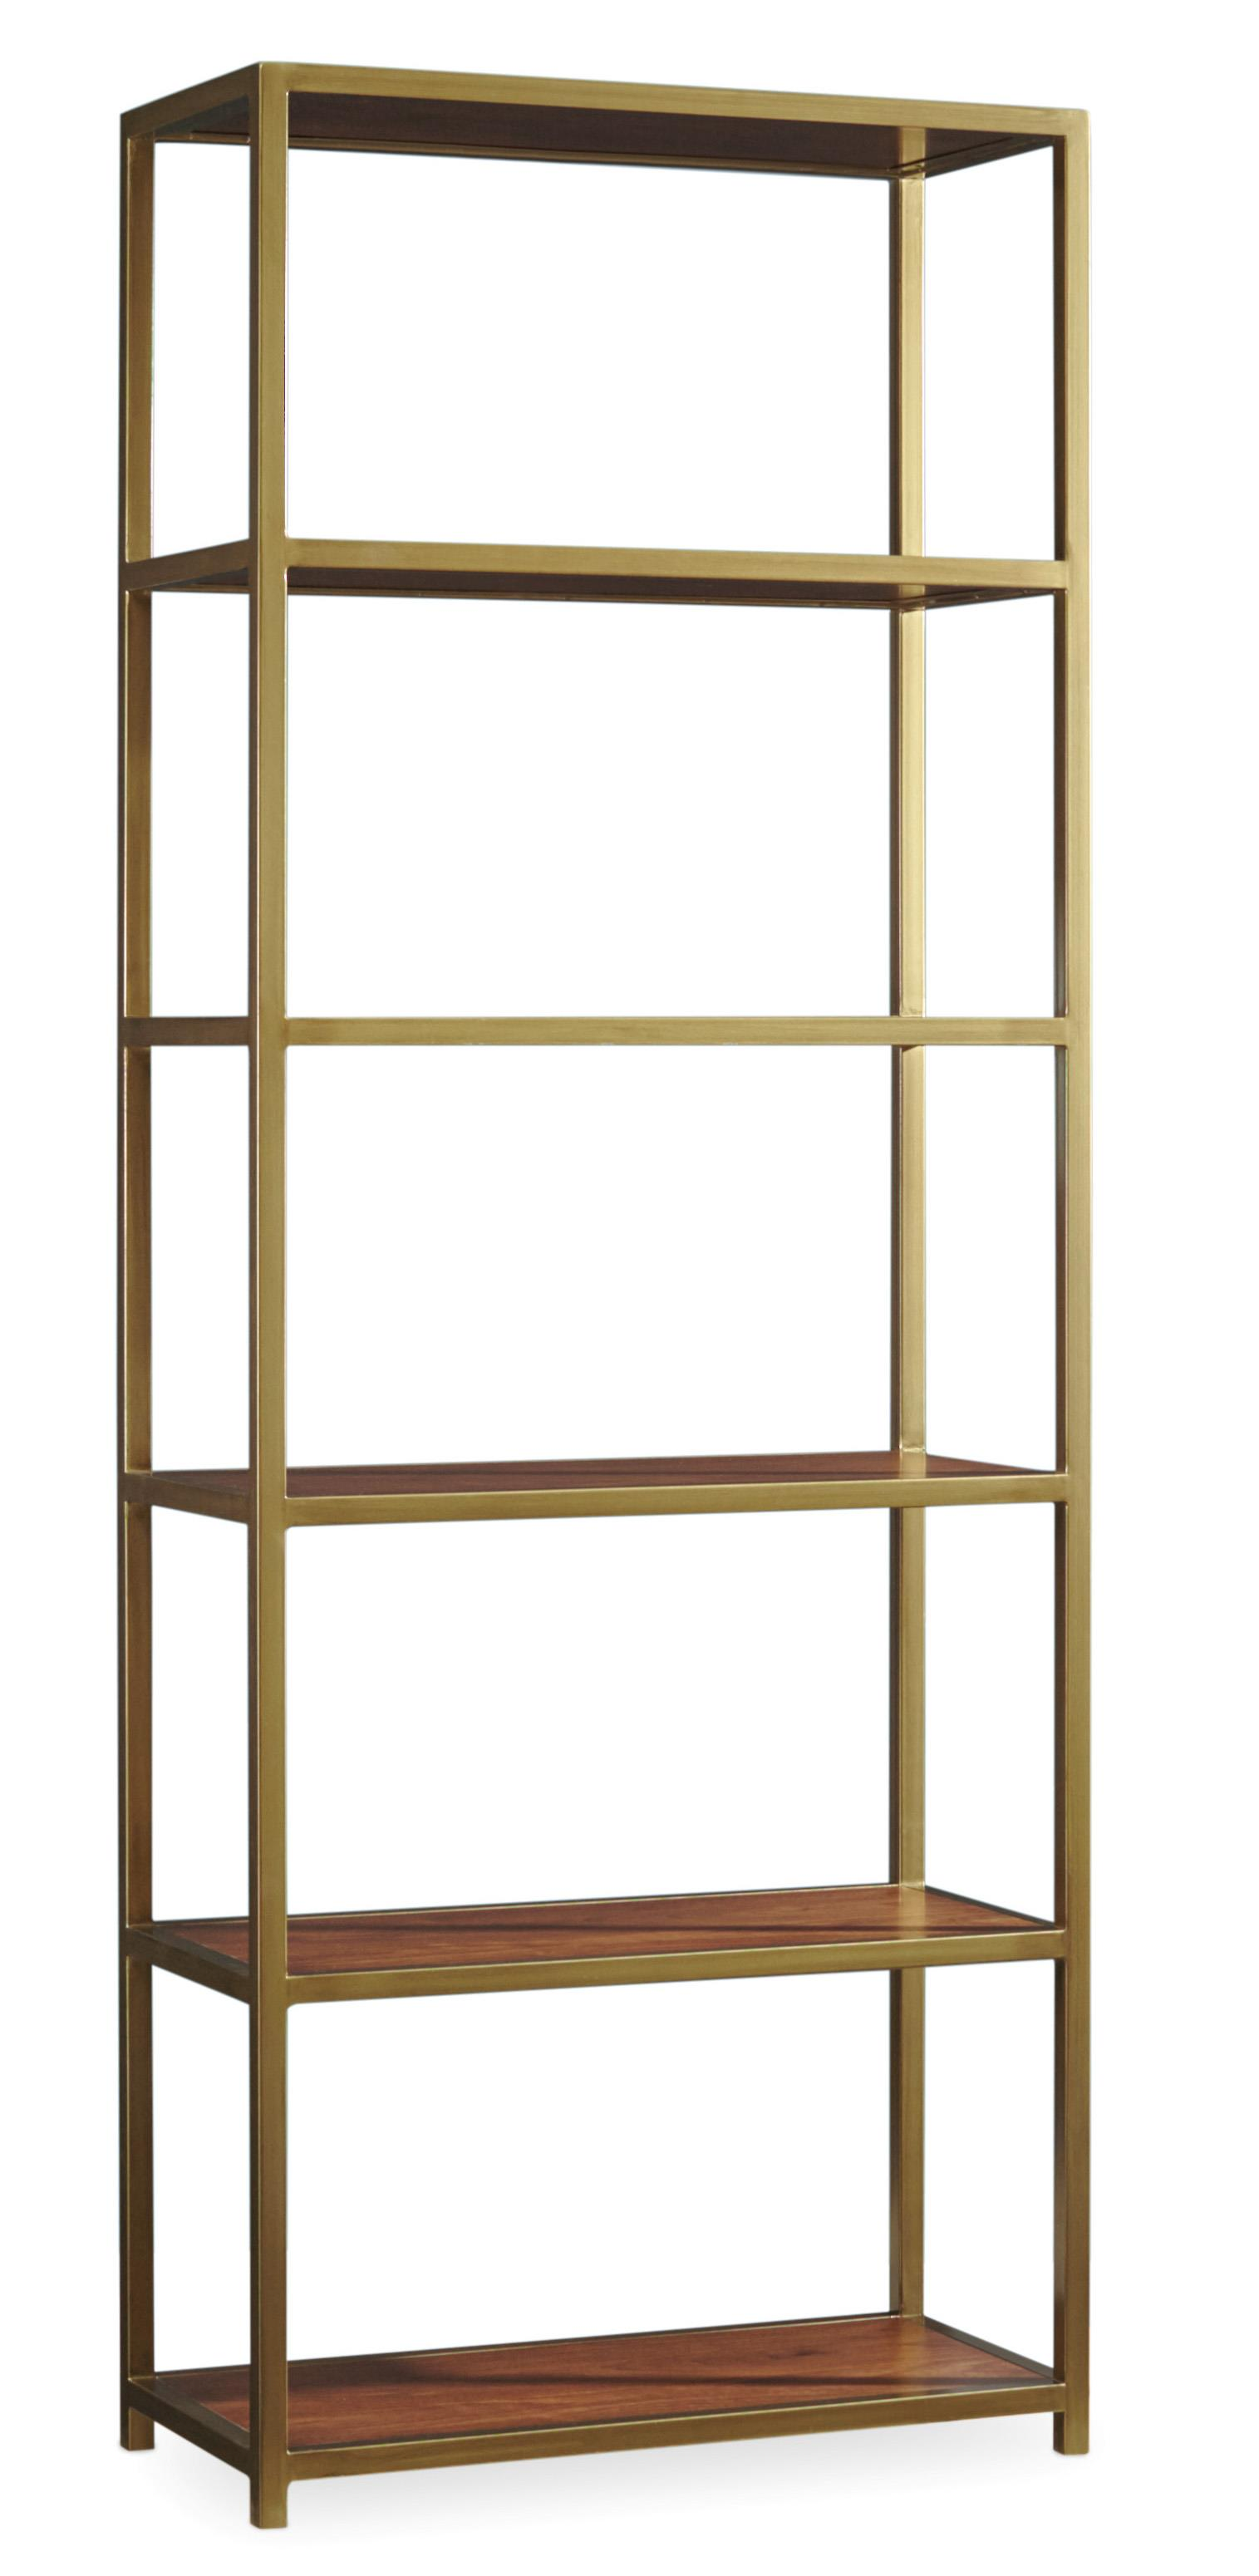 Hooker Furniture Studio 7H NYPL Tall Metal Bookcase - Item Number: 5398-10443